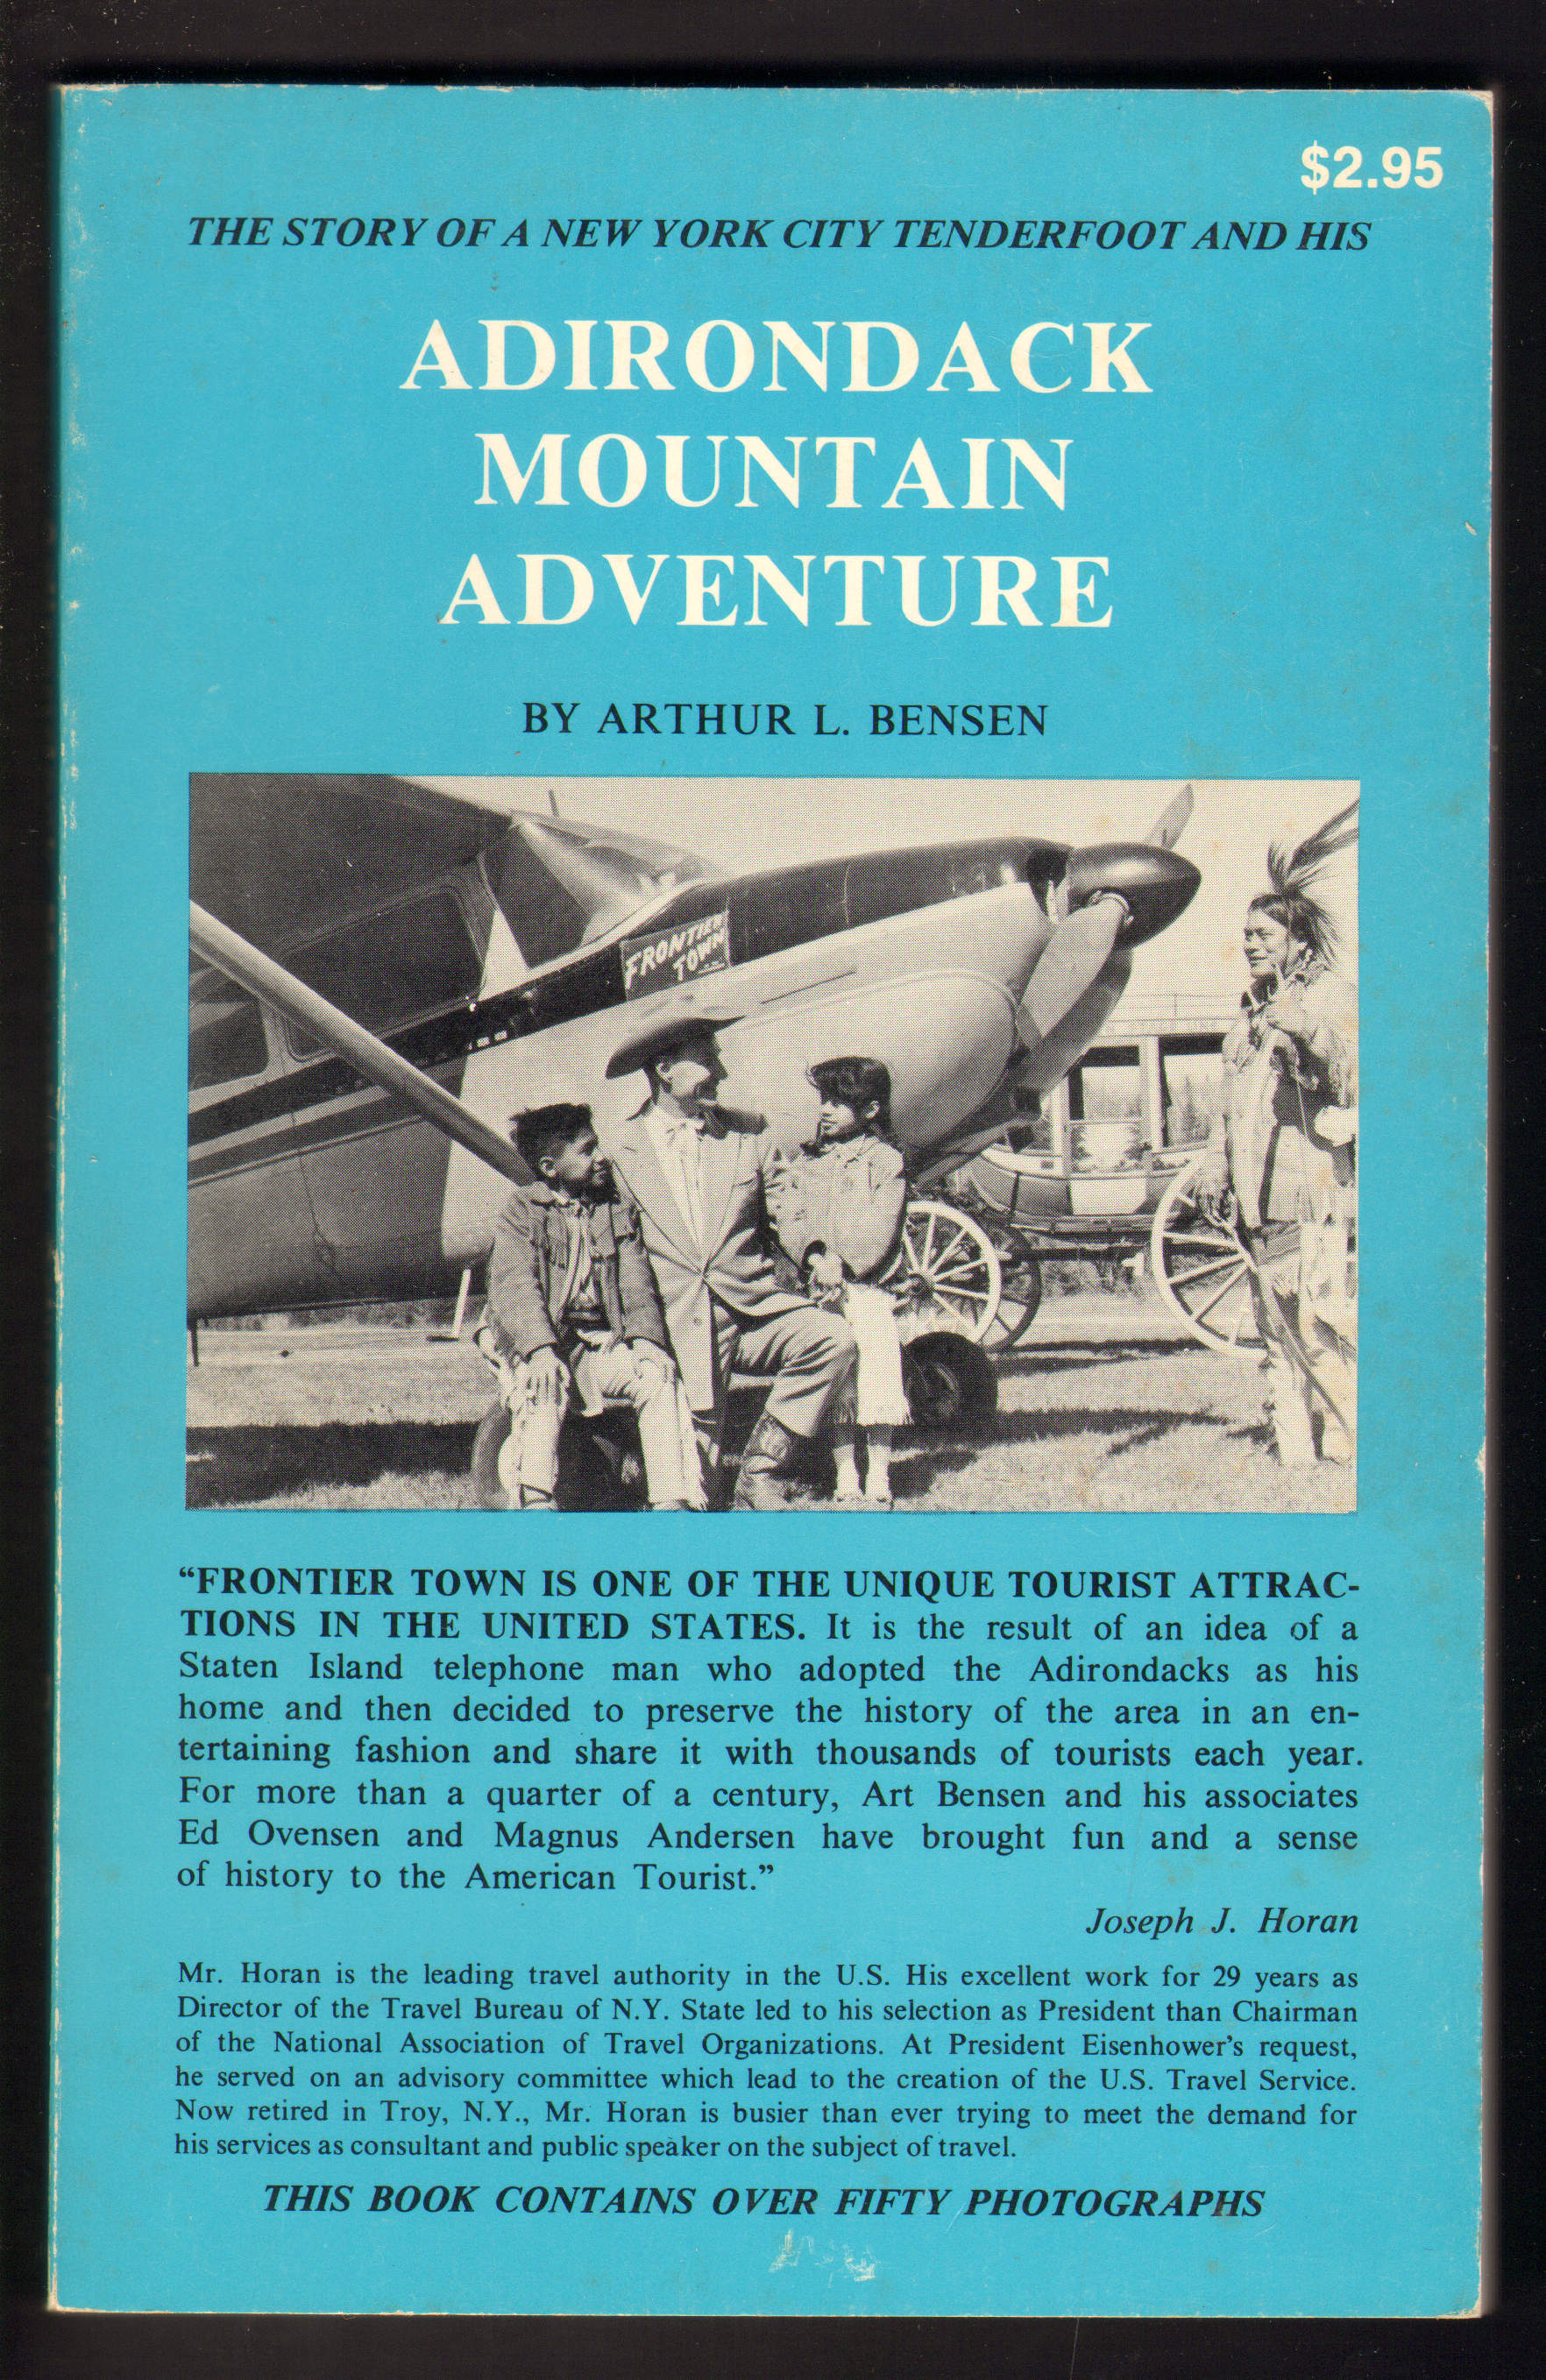 Image for The Story of a New York City Tenderfoot and His Adirondack Mountain Adventure